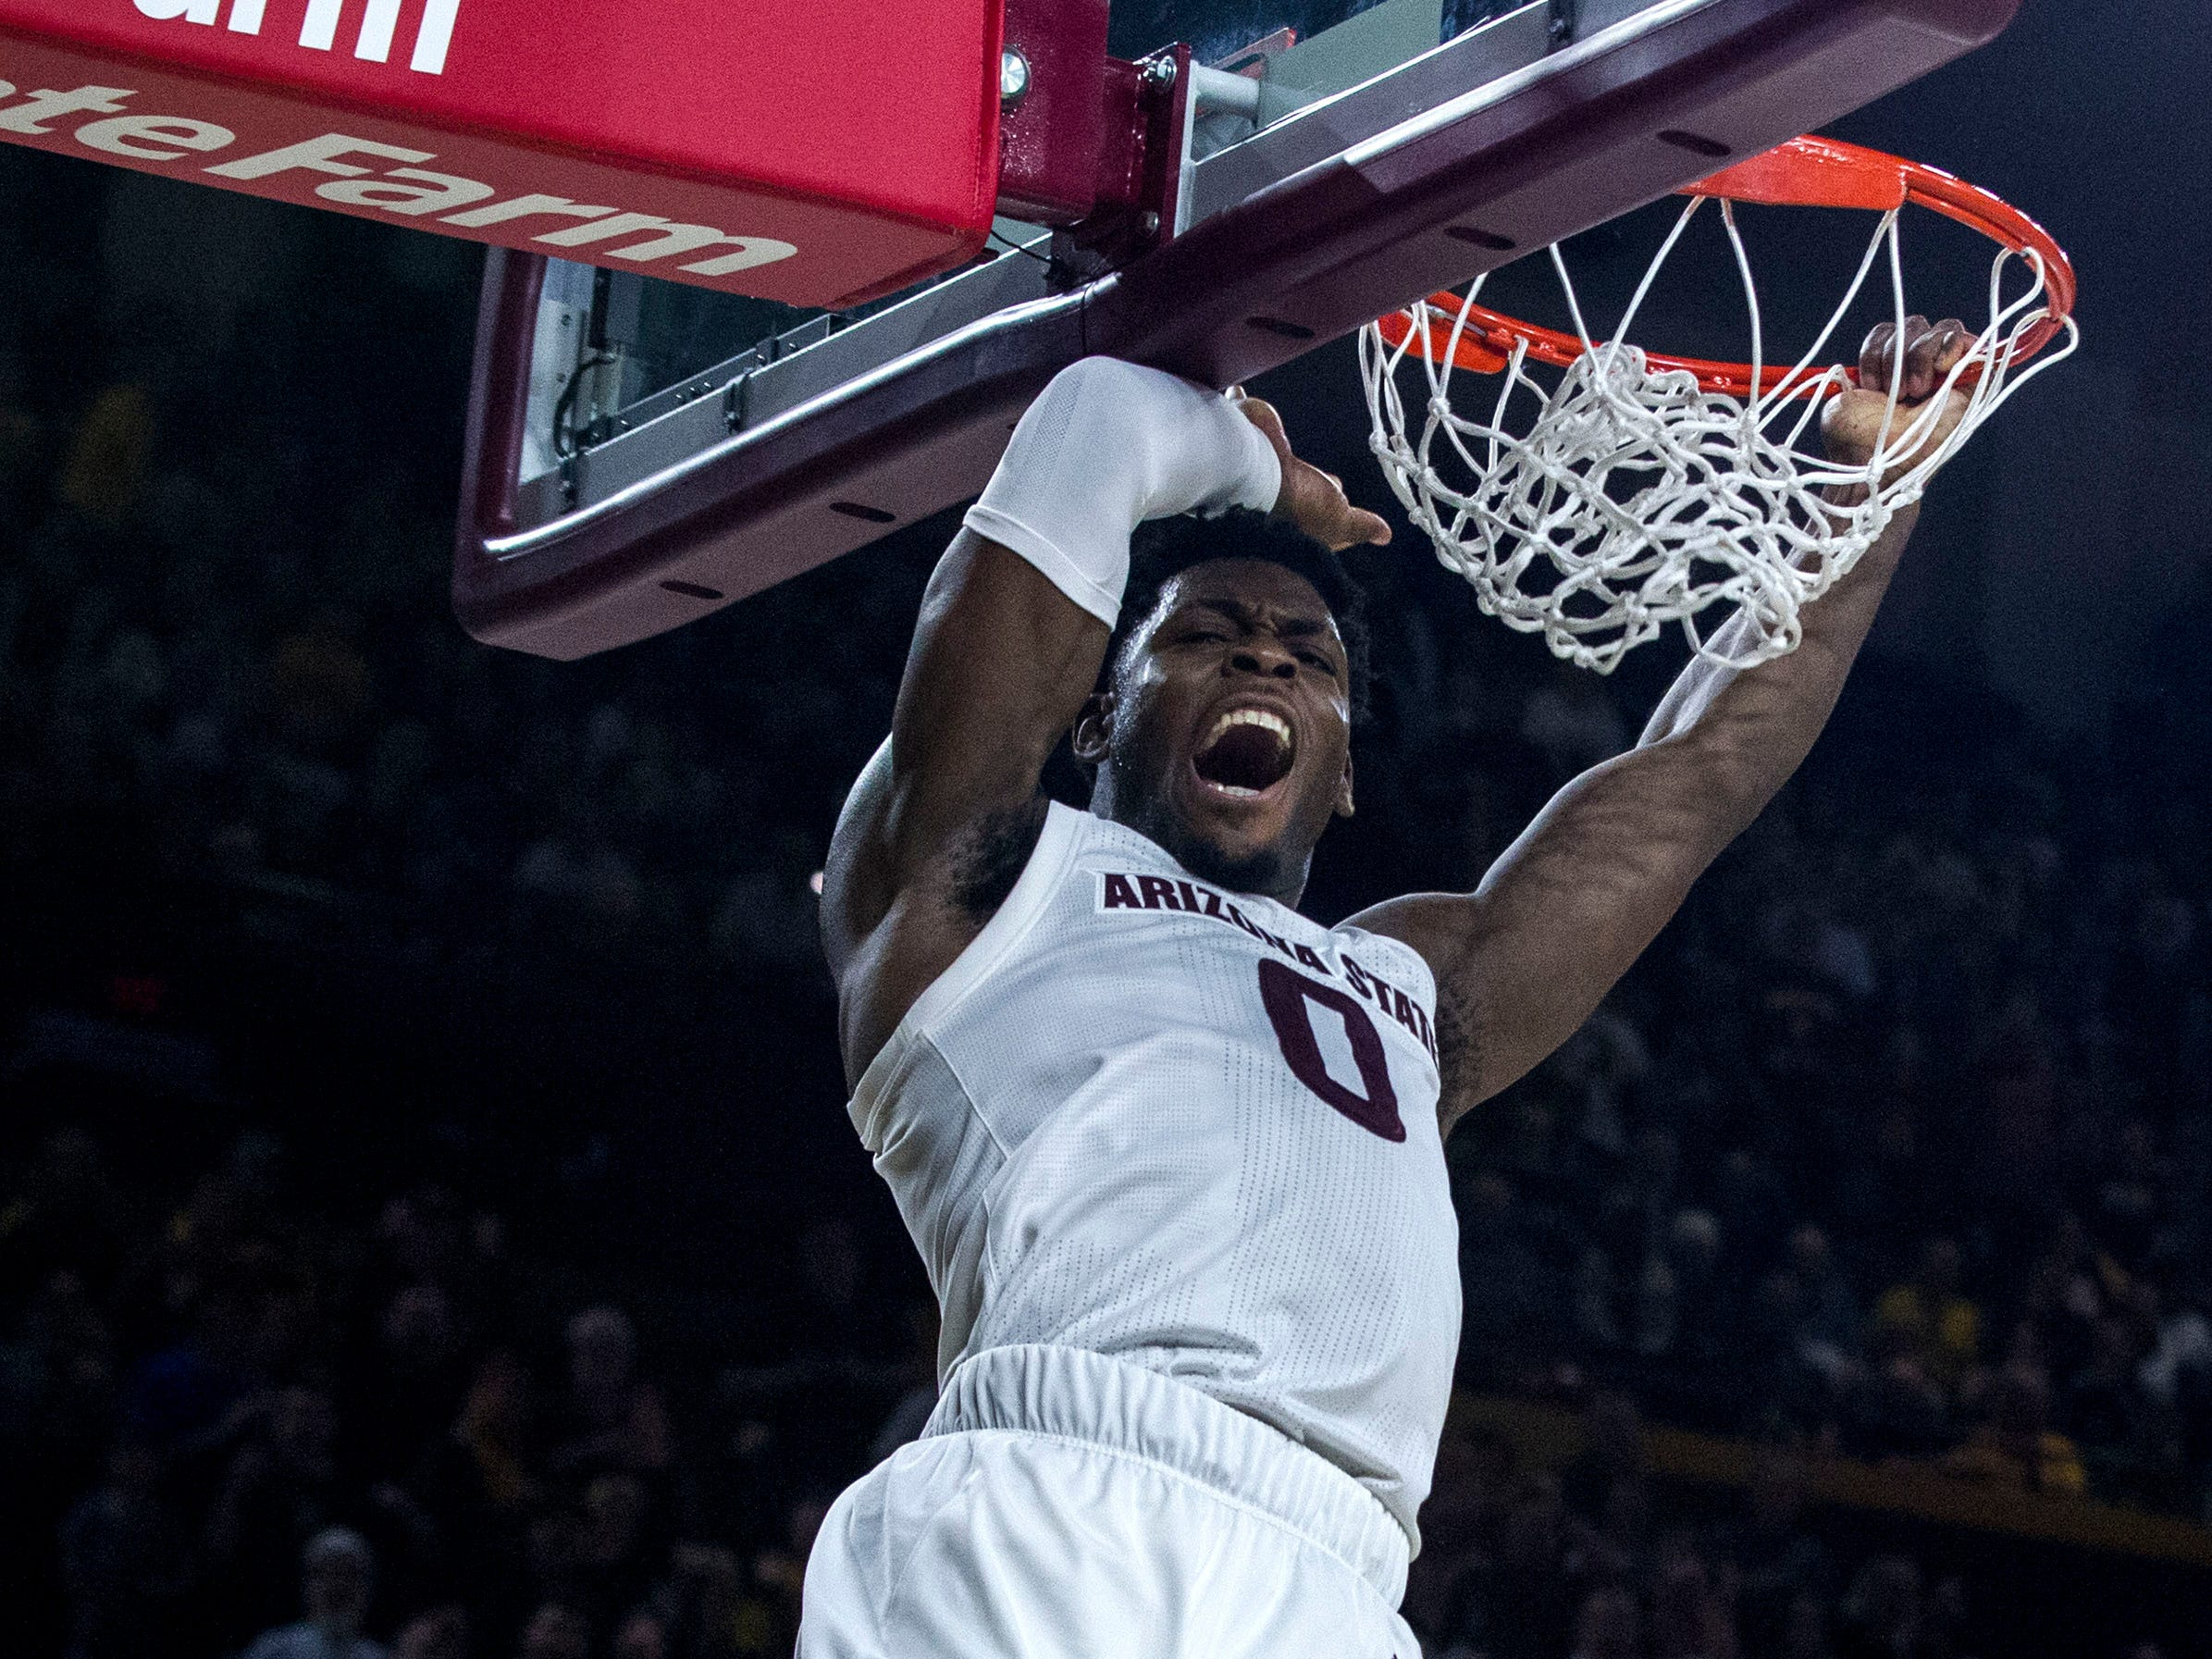 Arizona State's Luguentz Dort (0) dunks against Oregon during the second half, Saturday, Jan. 19, 2019, in Tempe, Ariz. Arizona State won 78-64. (AP Photo/Darryl Webb)